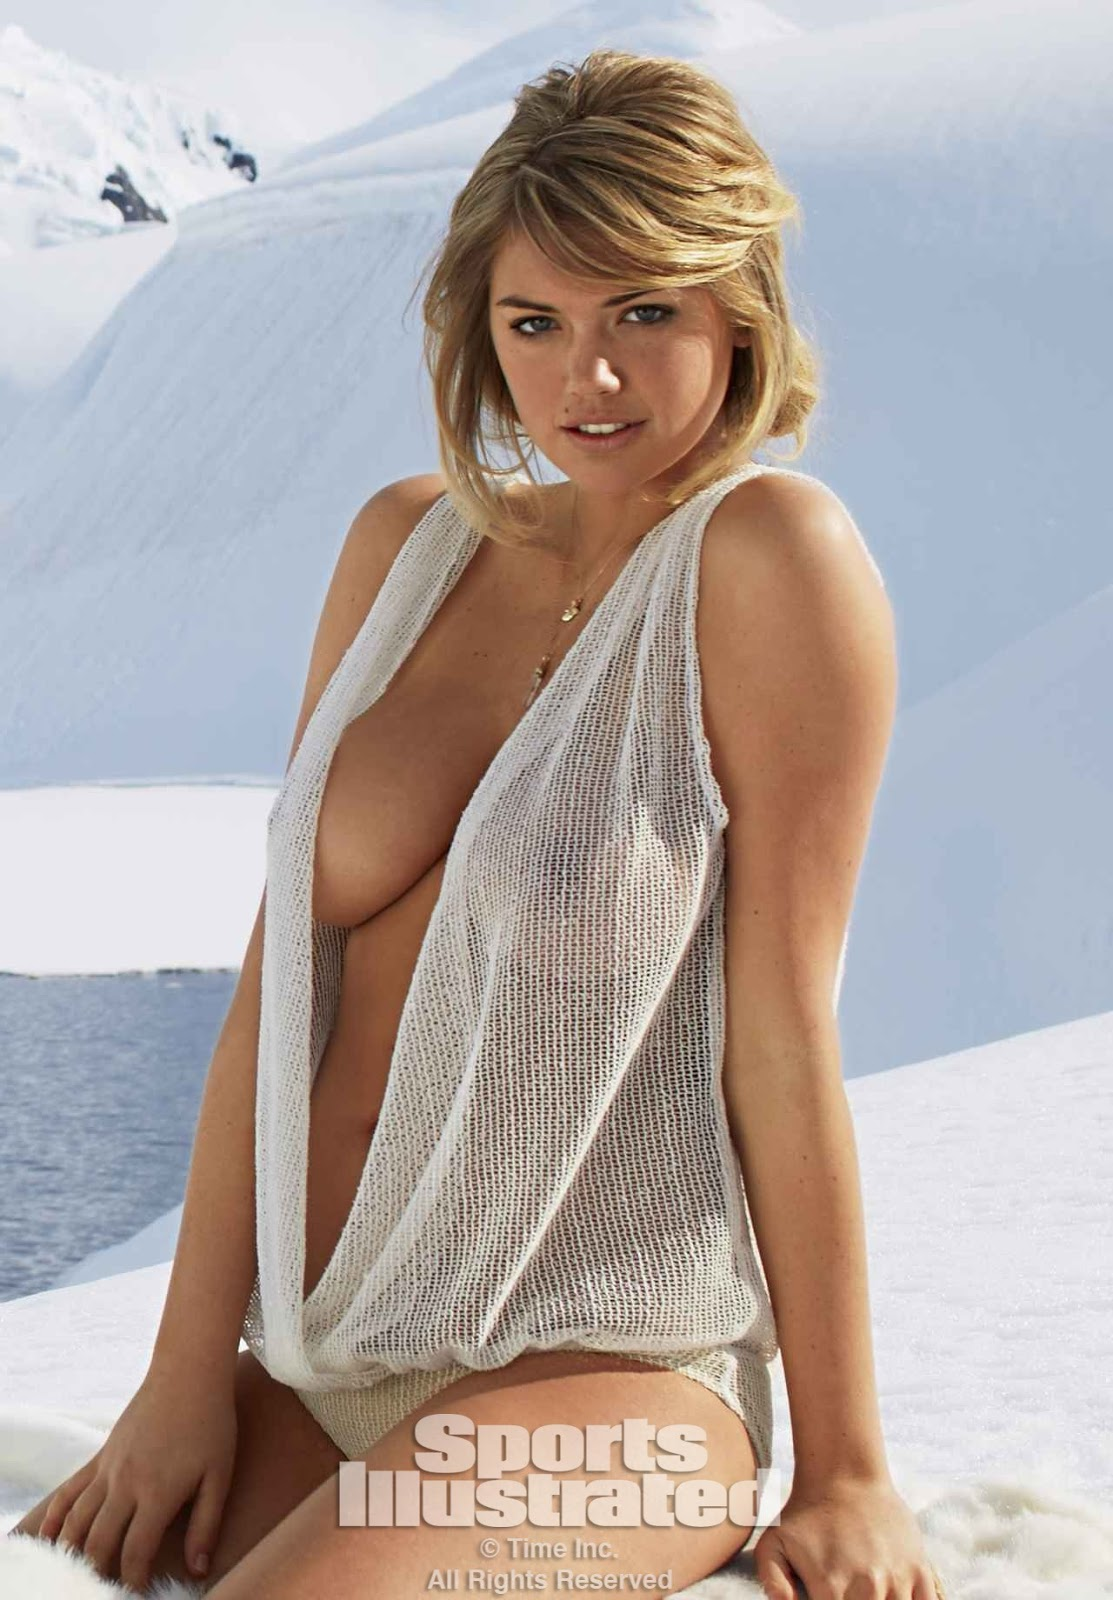 http://1.bp.blogspot.com/-kw3ODLHDtx4/UUBYw6PkY7I/AAAAAAAABh4/7OlrBnkawfI/s1600/Kate-Upton-Sports-Illustrated-March-2013-Photoshoot.jpg